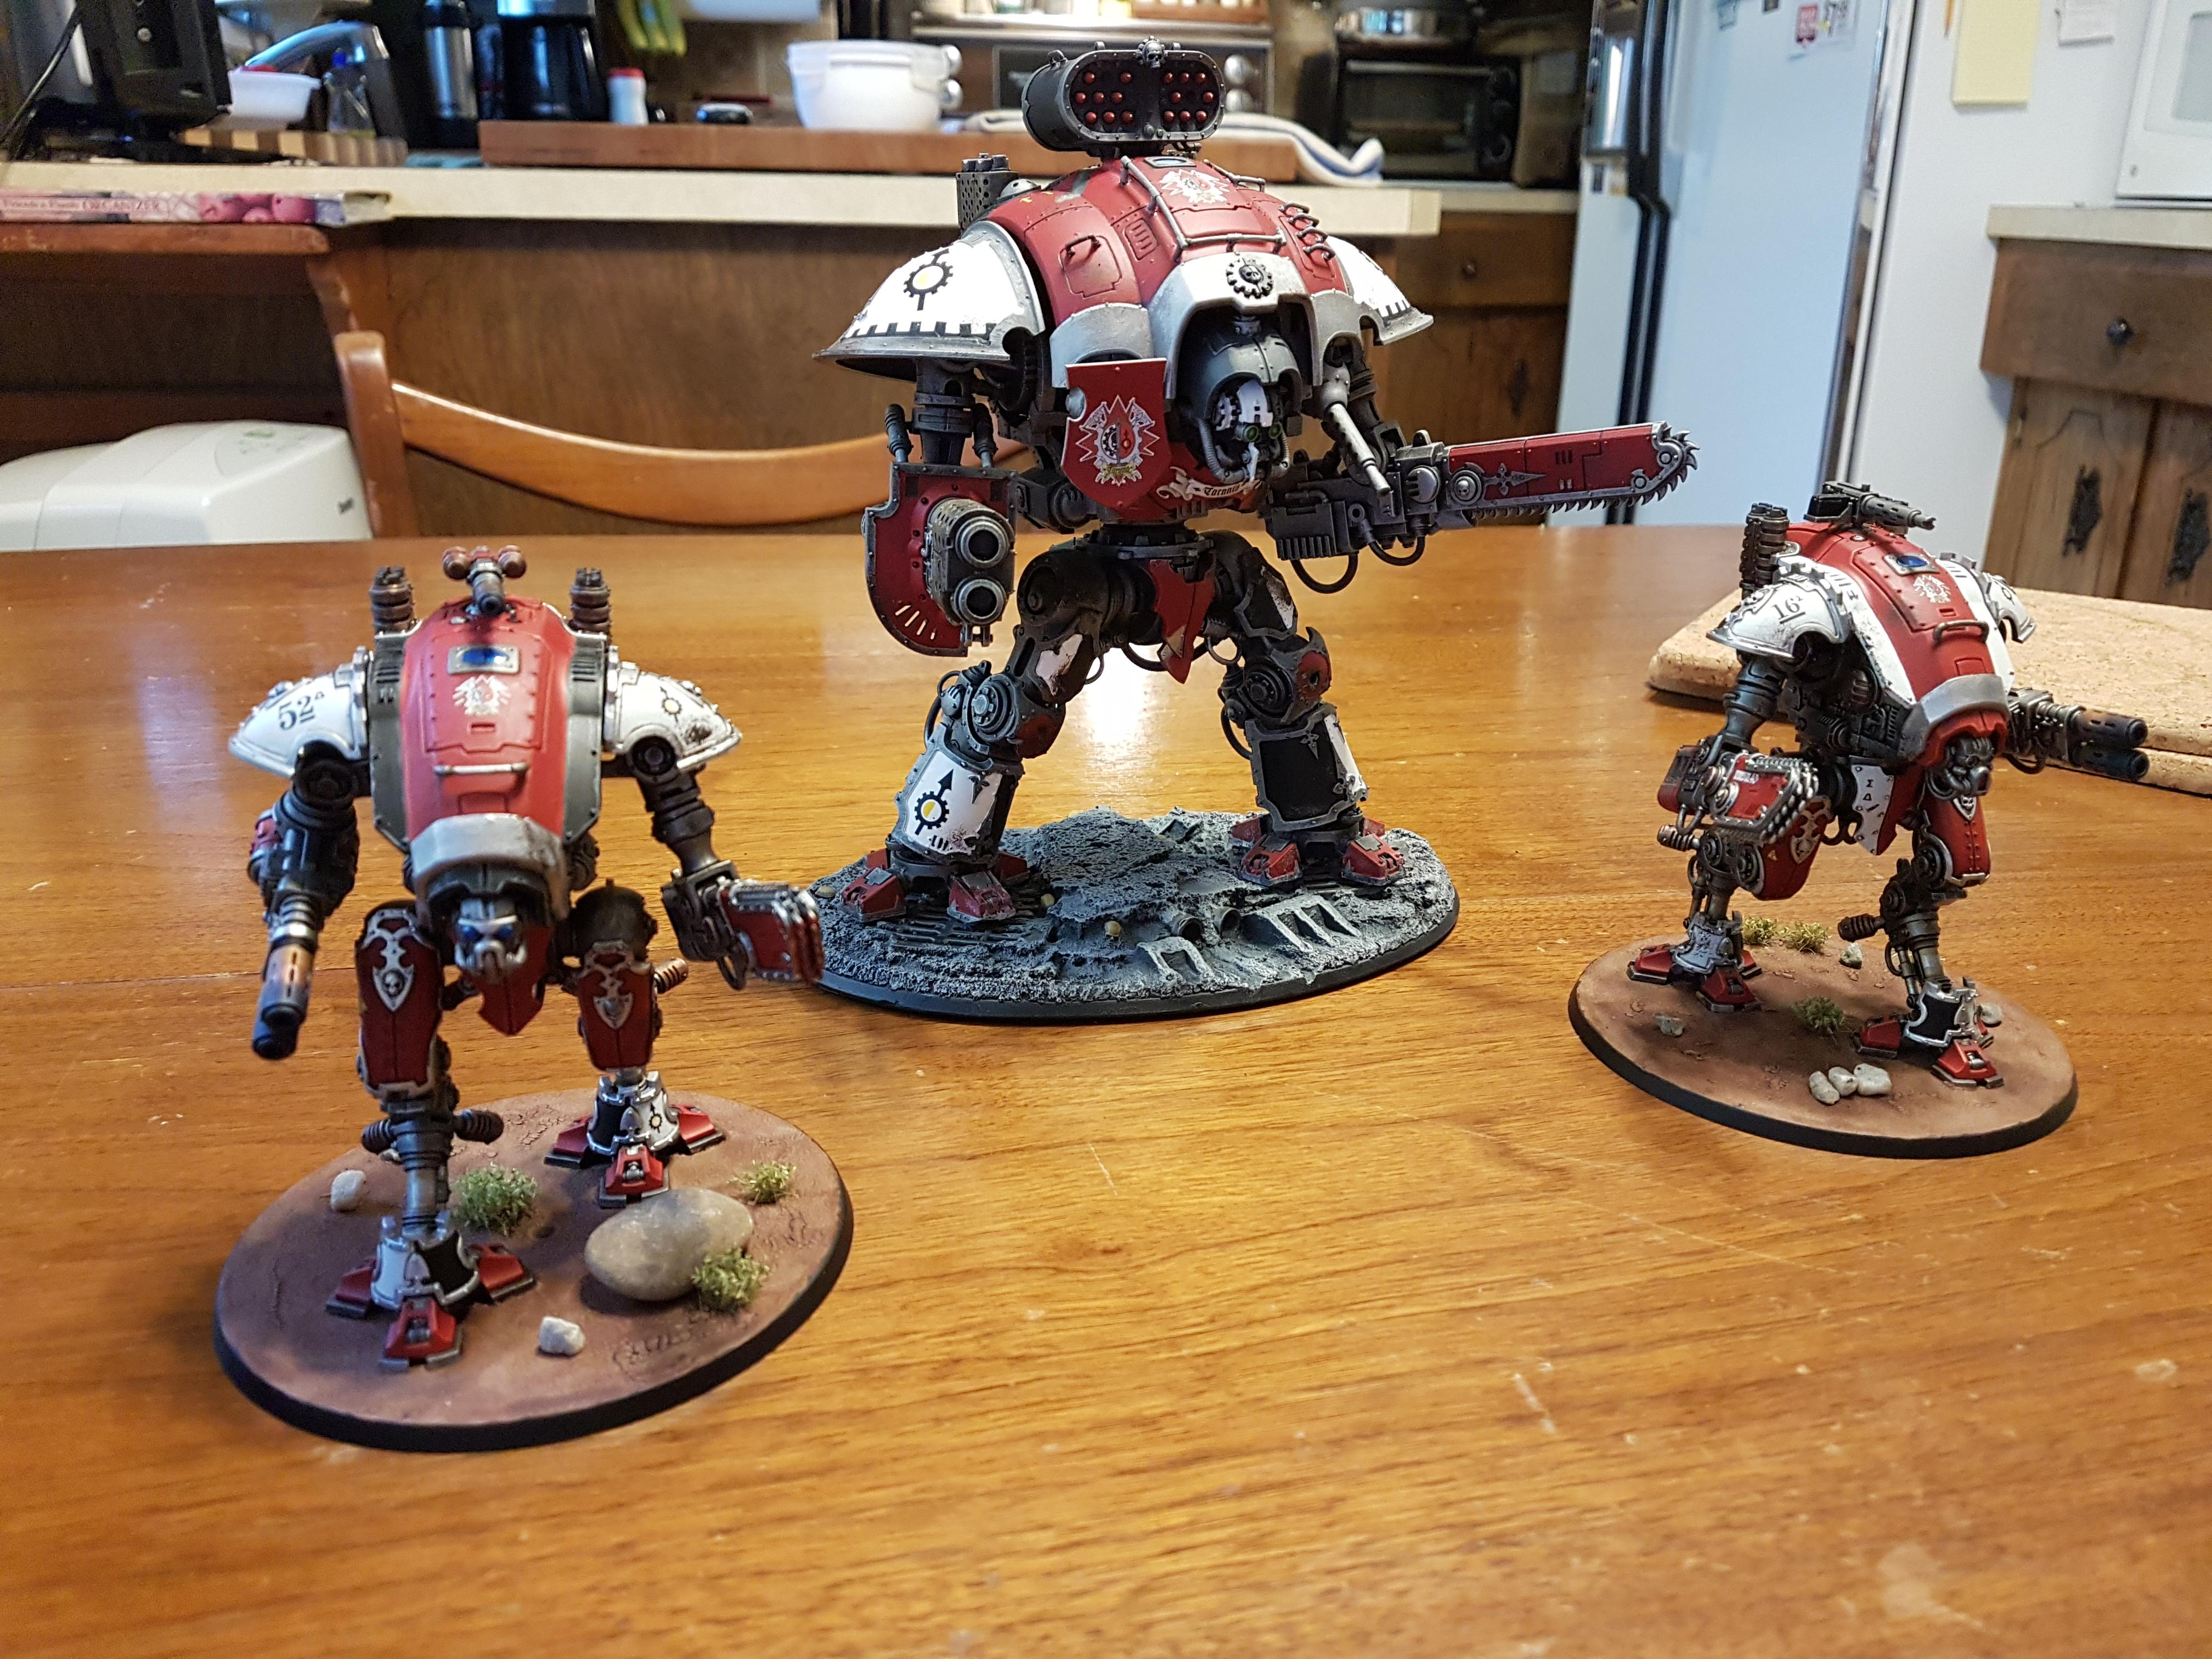 Armiger, Armiger Warglaives, Black, Heavy Stubber, House Taranis, Imperial, Imperial Knights, Knight Errant, Knights, Meltagun, Reaper Chain-cleaver, Red, Taranis, Thermal Spear, Warglaives, White